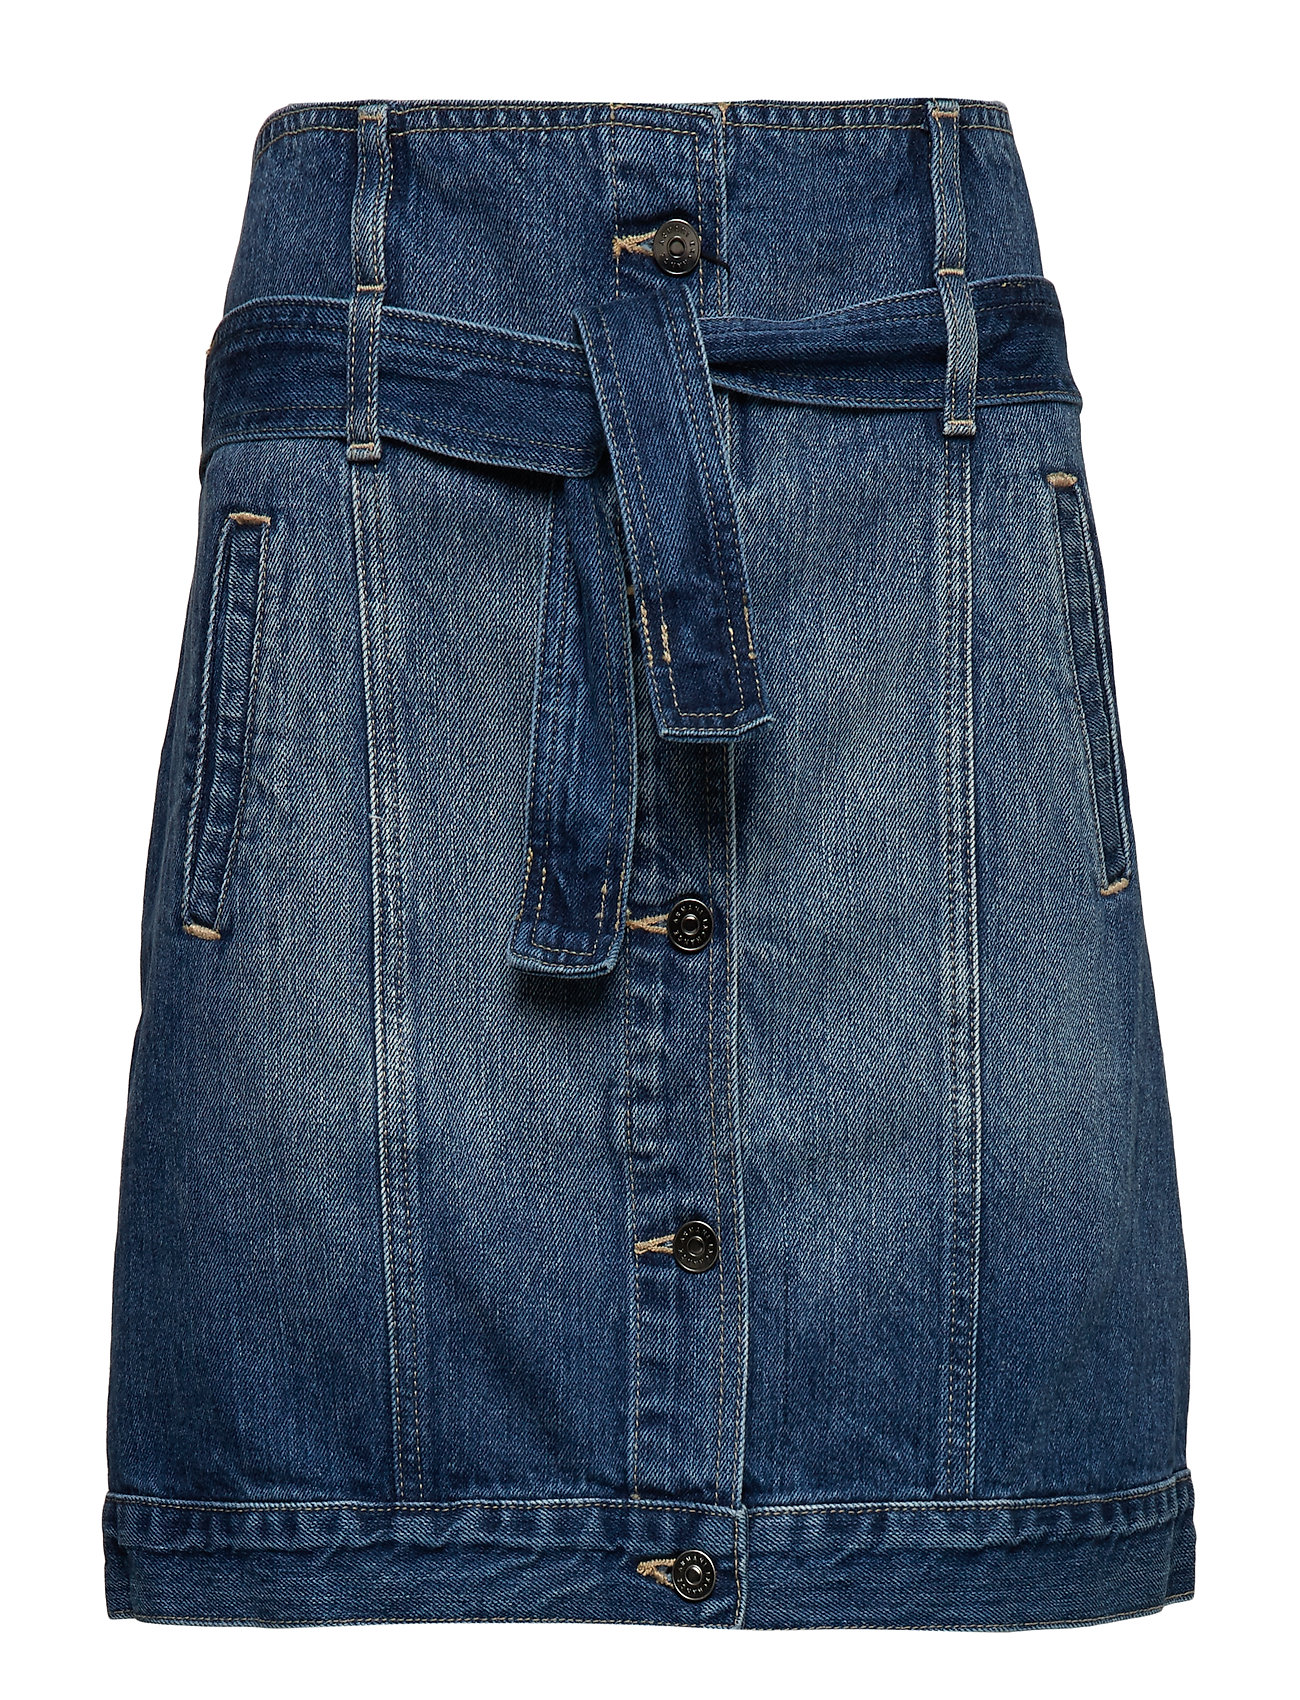 Armani Exchange WOMAN DENIM SKIRT - INDIGO DENIM